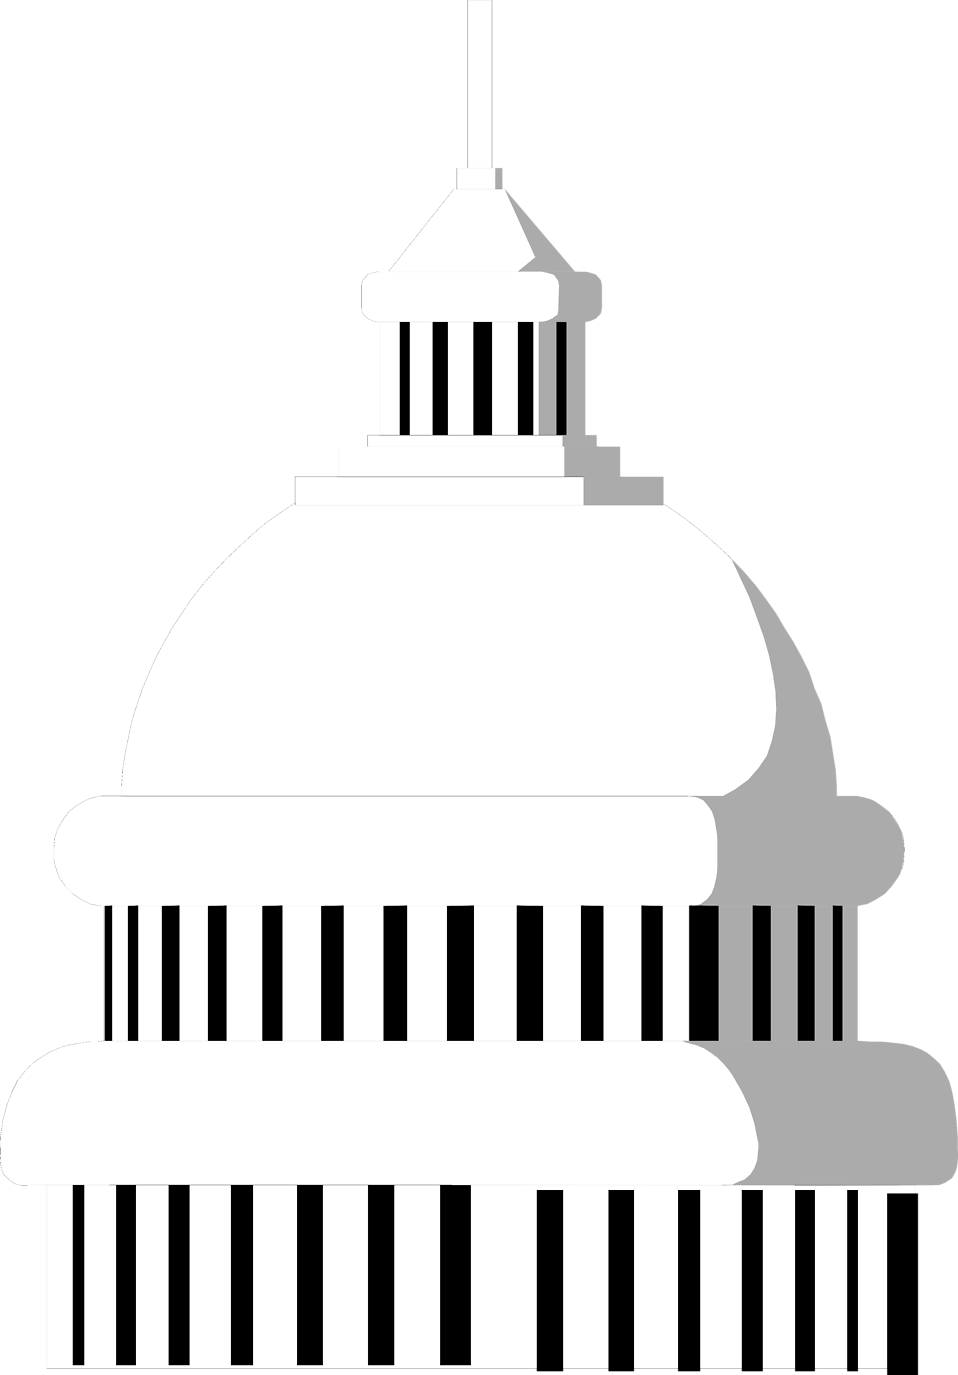 House of congress clipart clip royalty free download Us Capitol Building | Free Stock Photo | Illustration of the the ... clip royalty free download